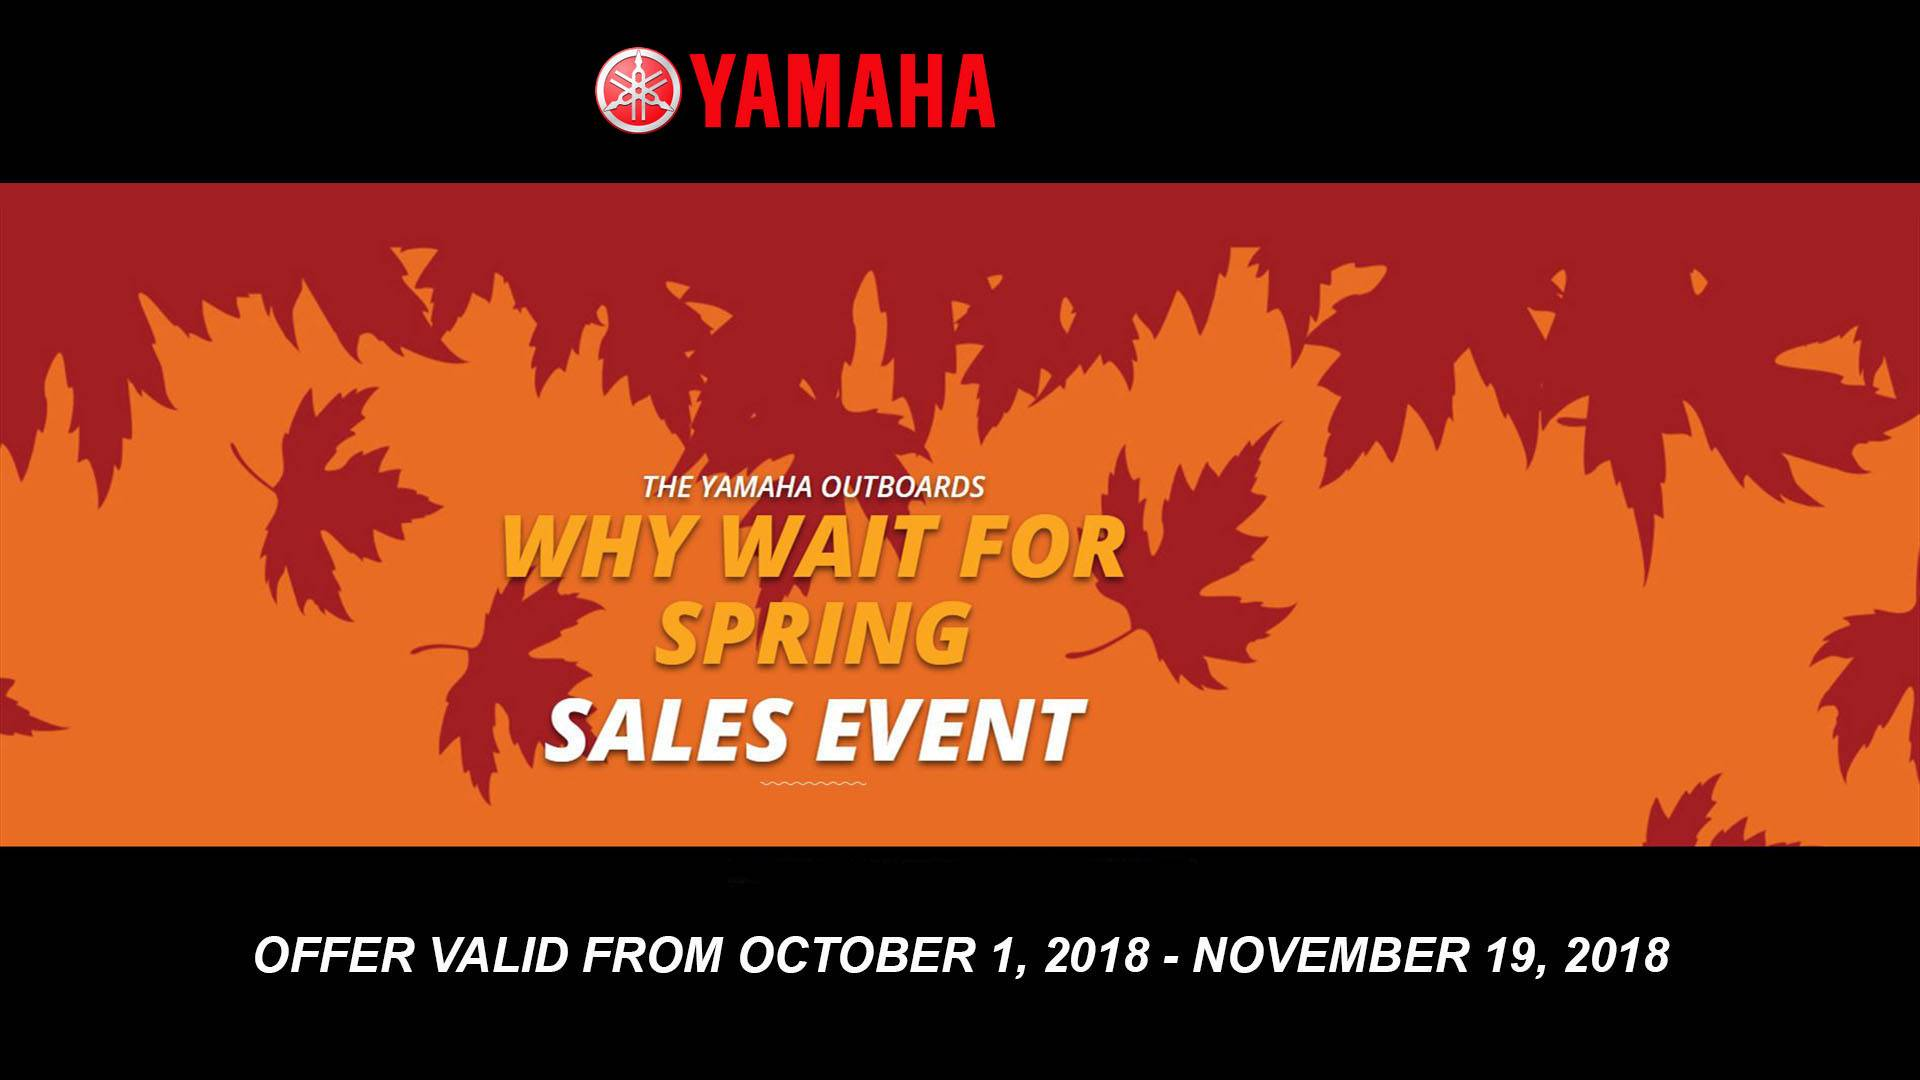 Yamaha Outboards - Why Wait for Spring Sales Event